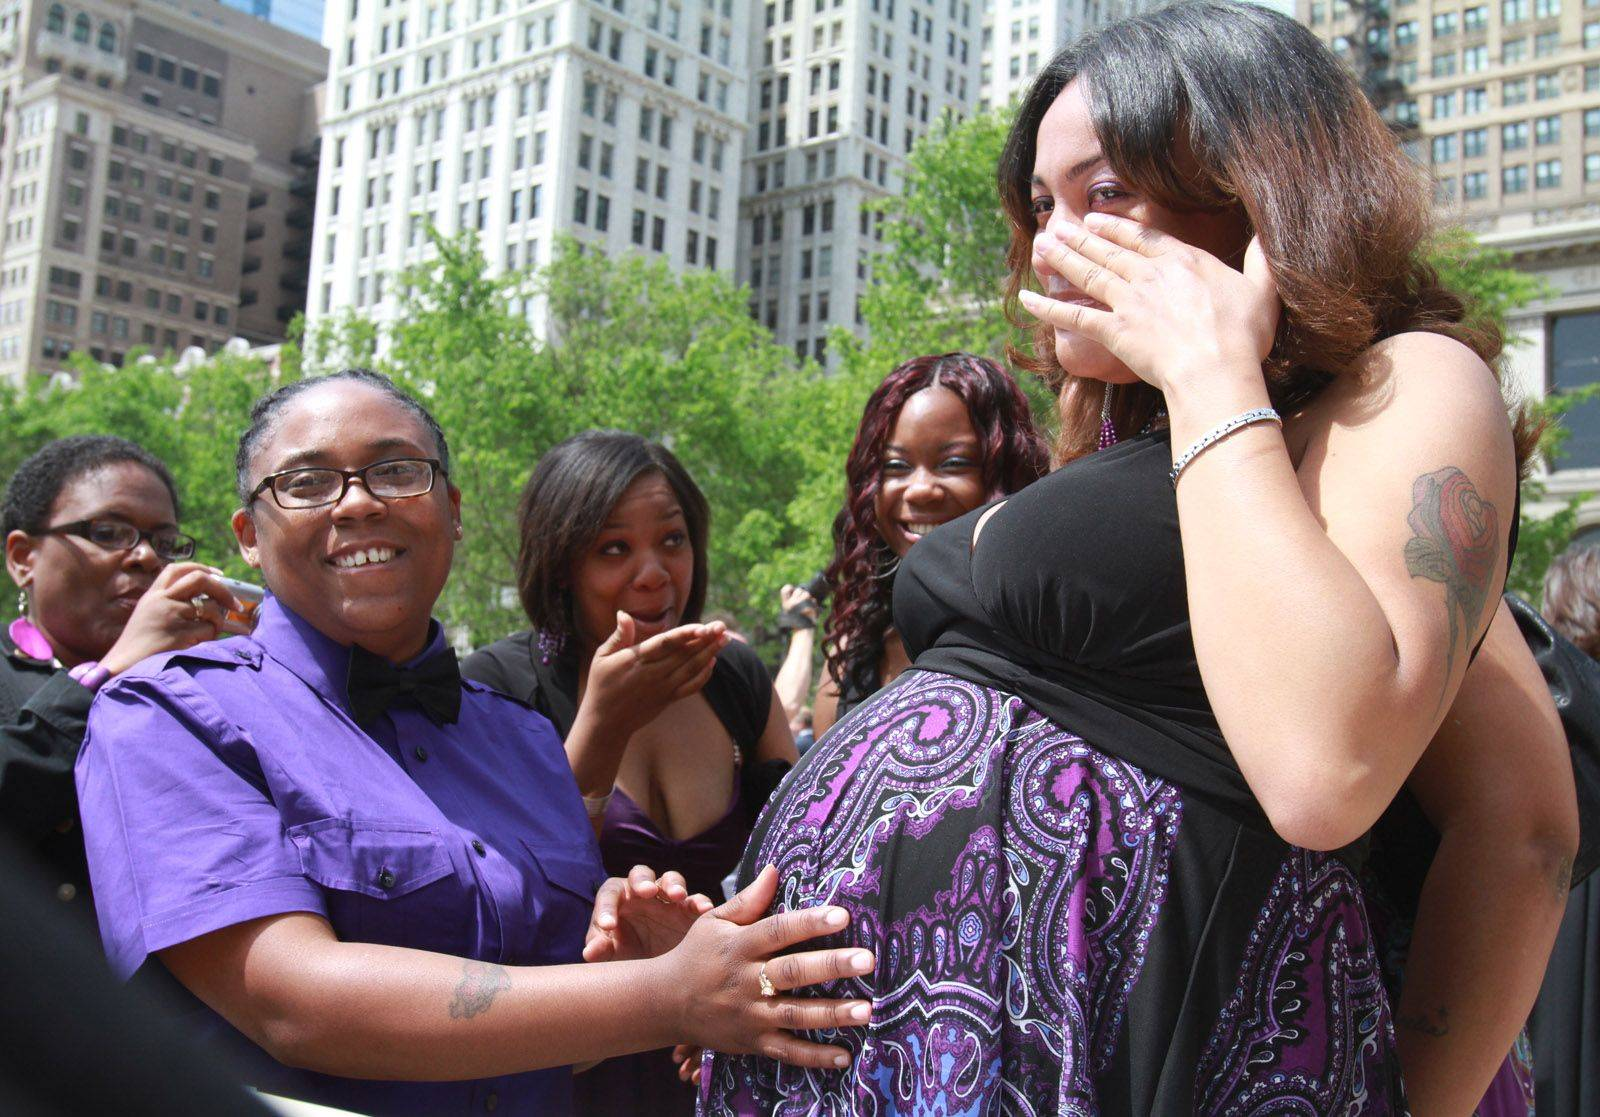 Ceremony forges Illinois' first civil unions